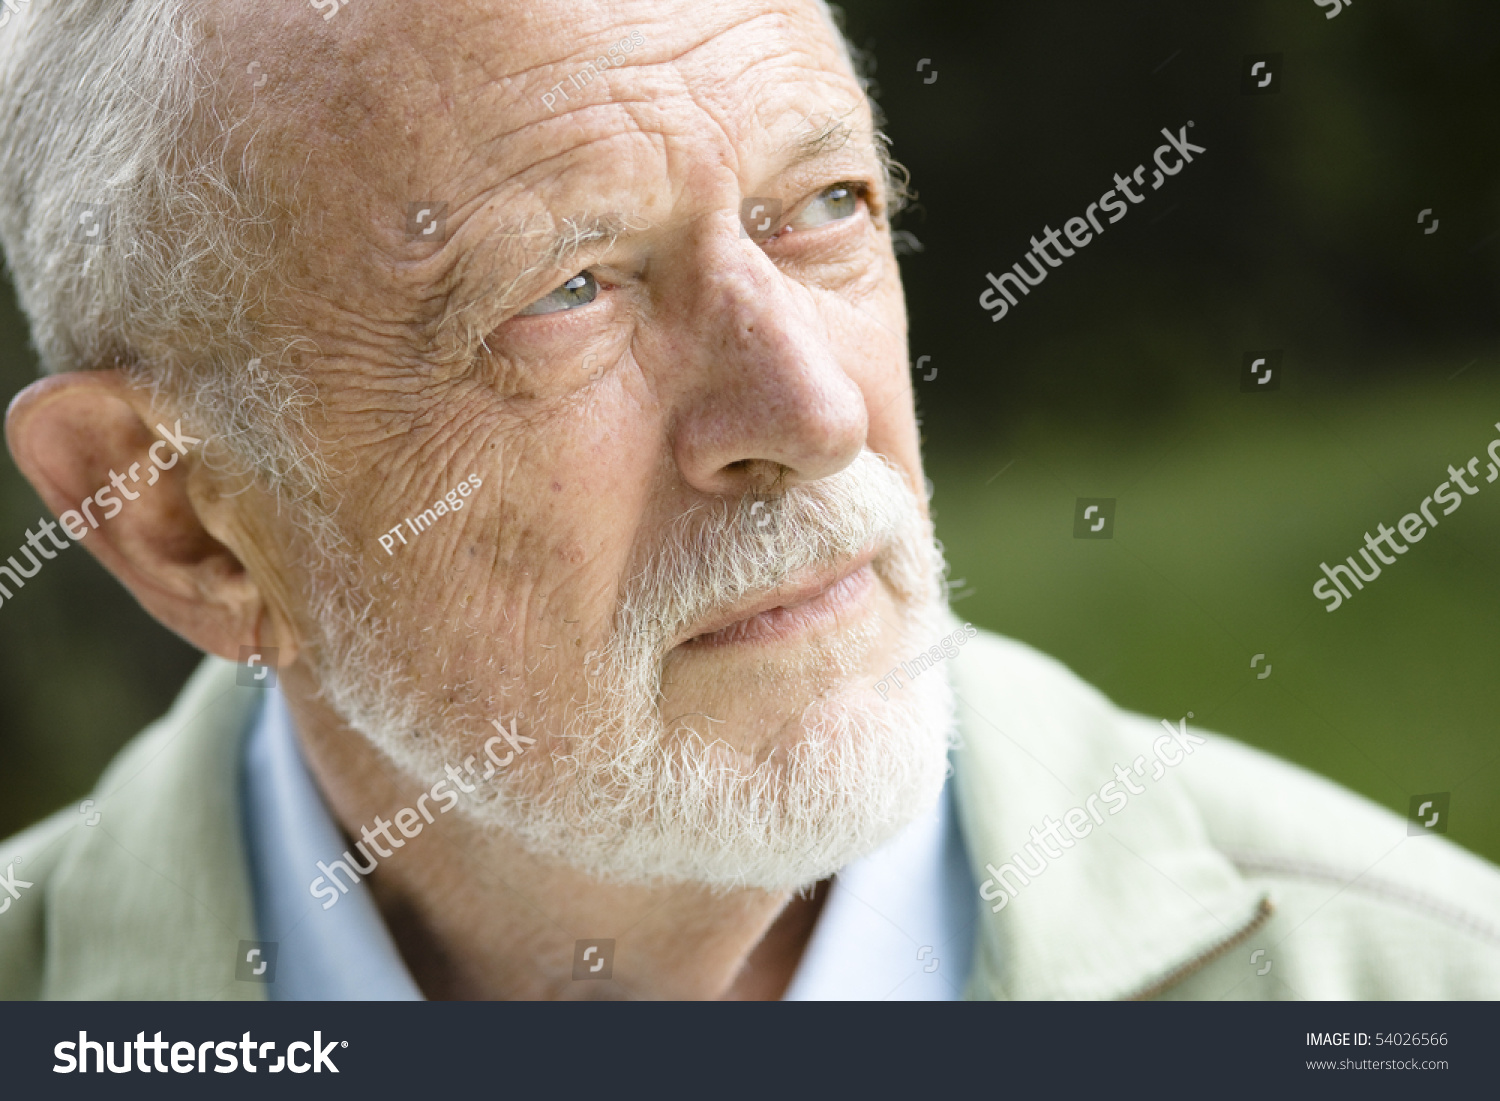 Wondrous Closeup Profile On Old Man Grey Stock Photo 54026566 Shutterstock Hairstyle Inspiration Daily Dogsangcom